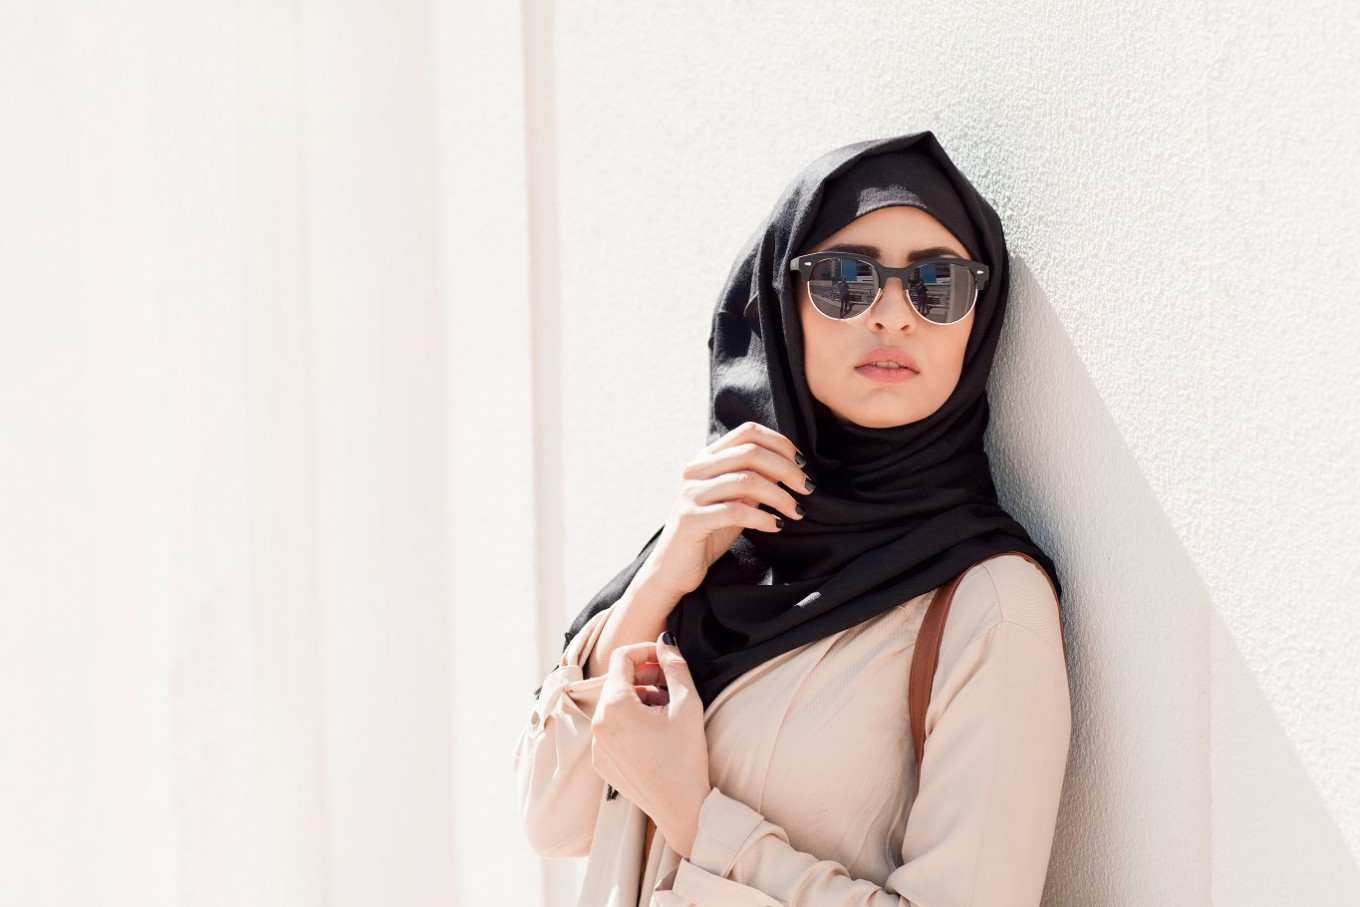 Global hijabista style, from the Afghan burqa to the cover of a